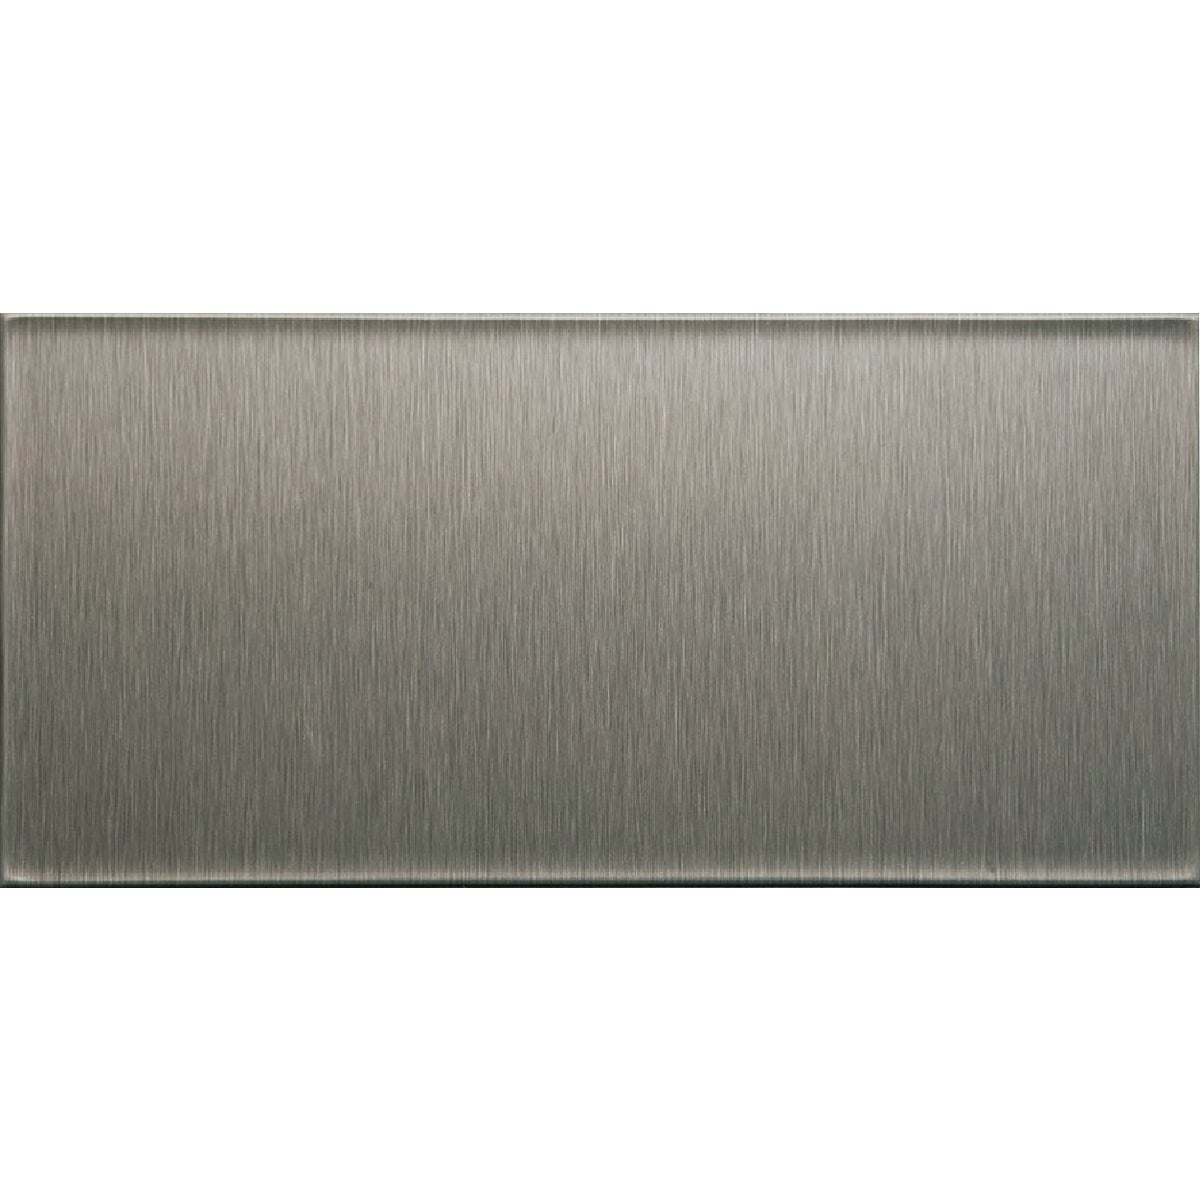 S STEEL SHORT WALL TILE - A53-50 by Acp